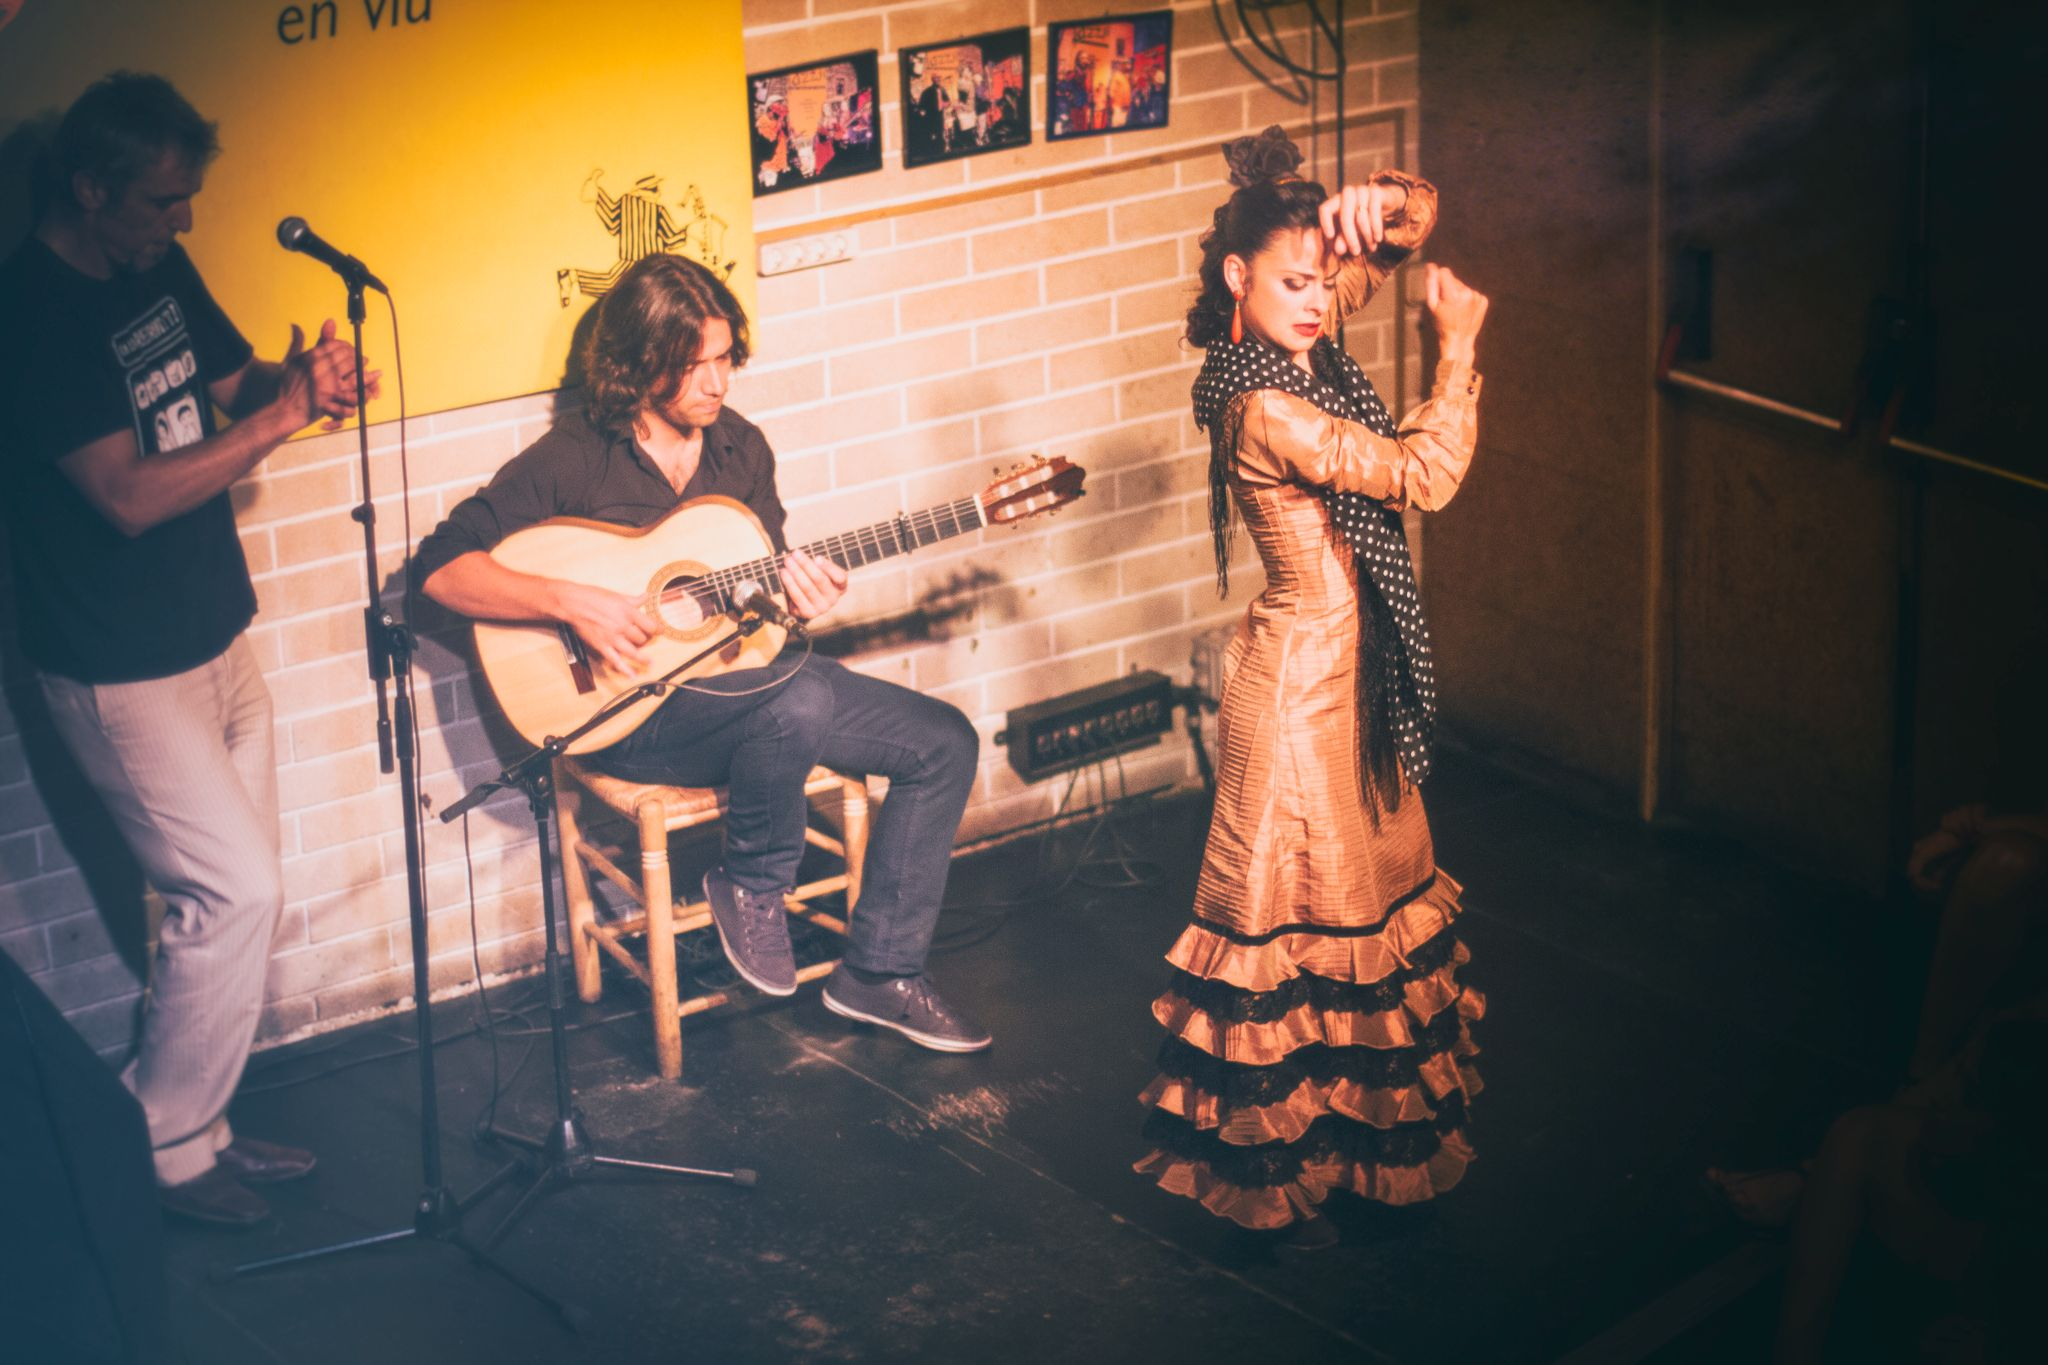 JAZZ SÍ CLUB   The must see and cheap Flamenco show in town   El Raval    Agenda